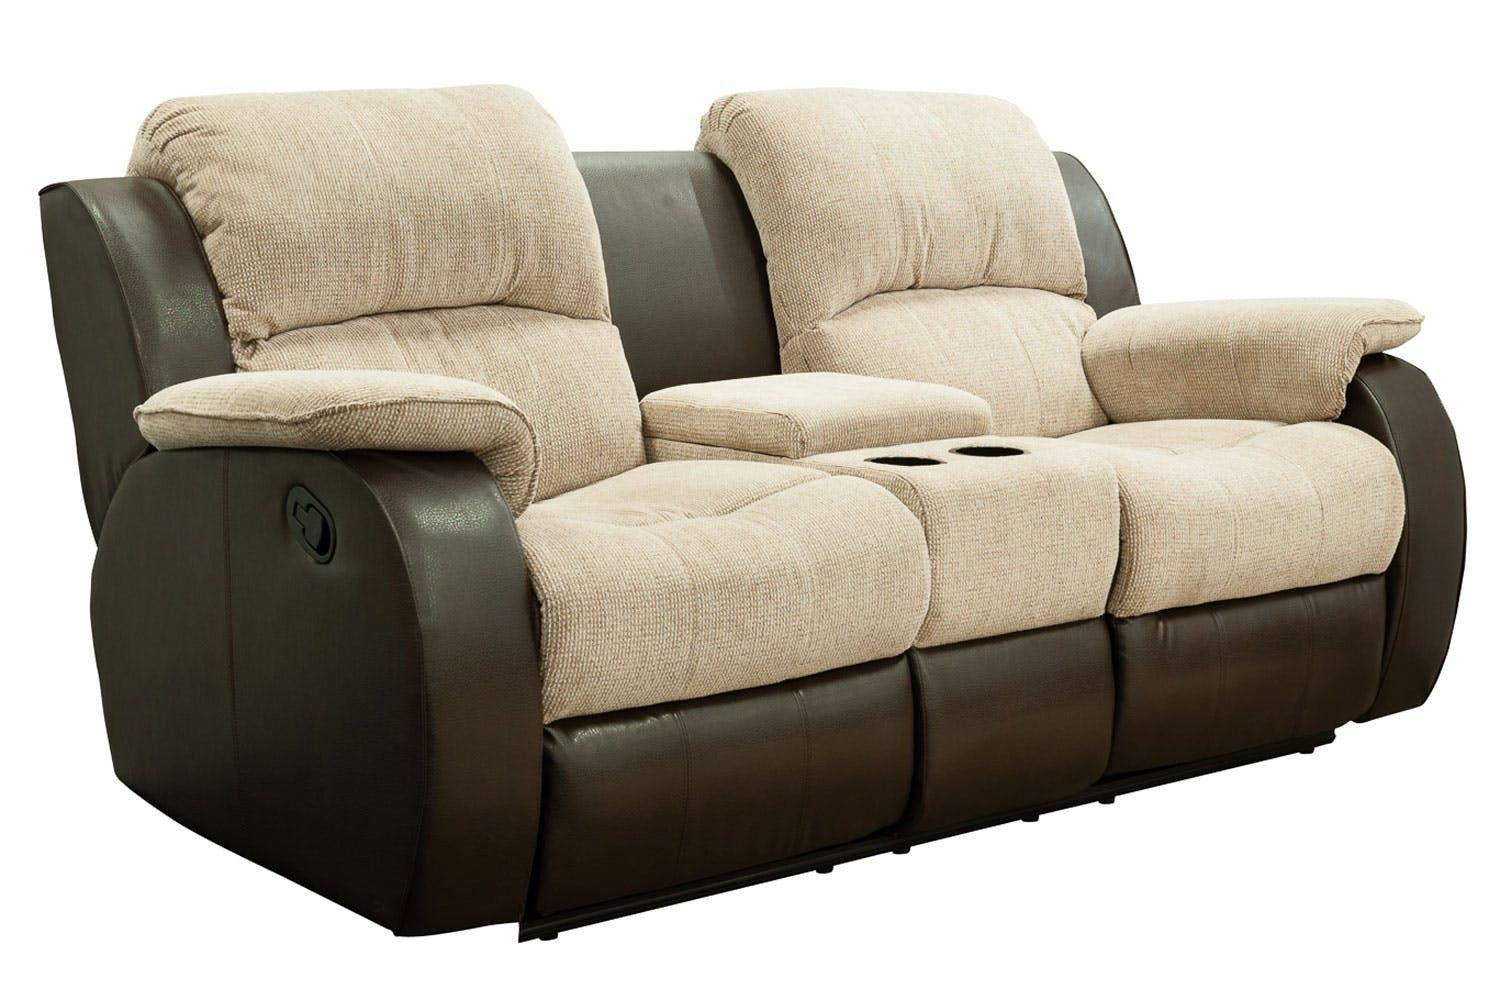 Sofas Center : Magnificent Recliningfa With Console Images Concept With Regard To Sofas With Console (Image 16 of 20)